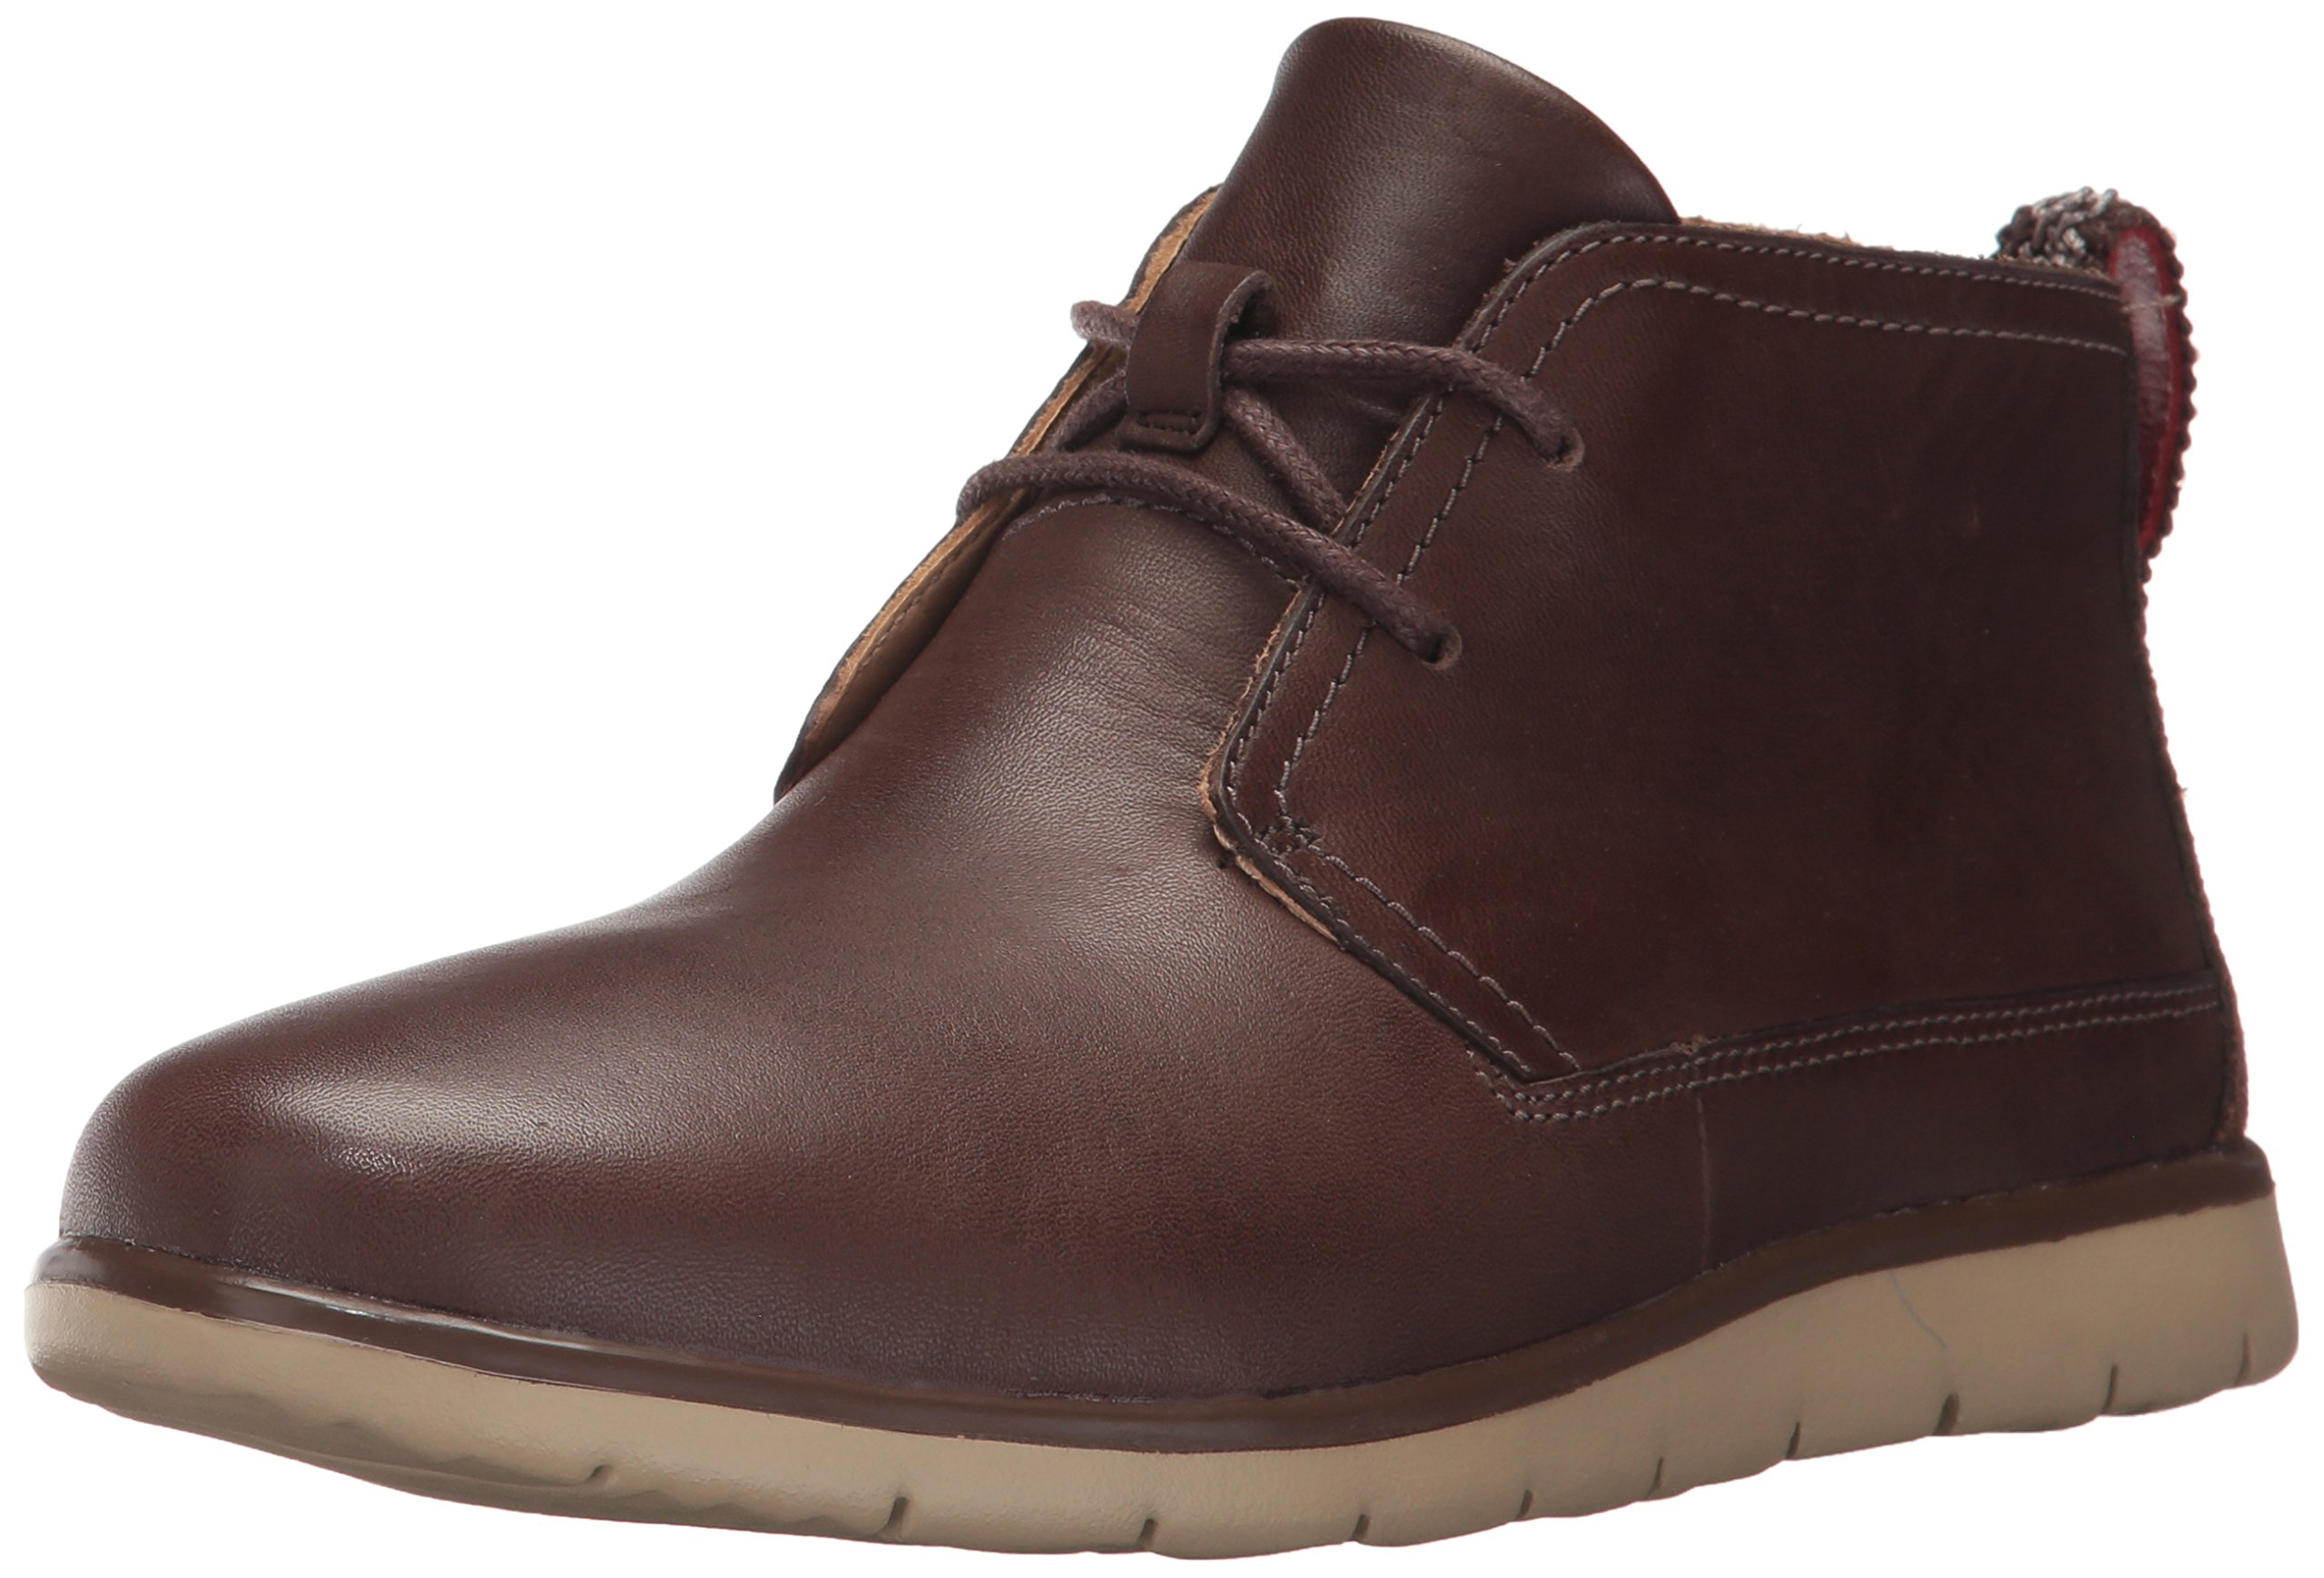 UGG Men's Freamon Wp Chukka Boot, Grizzly, 10.5 M US by UGG